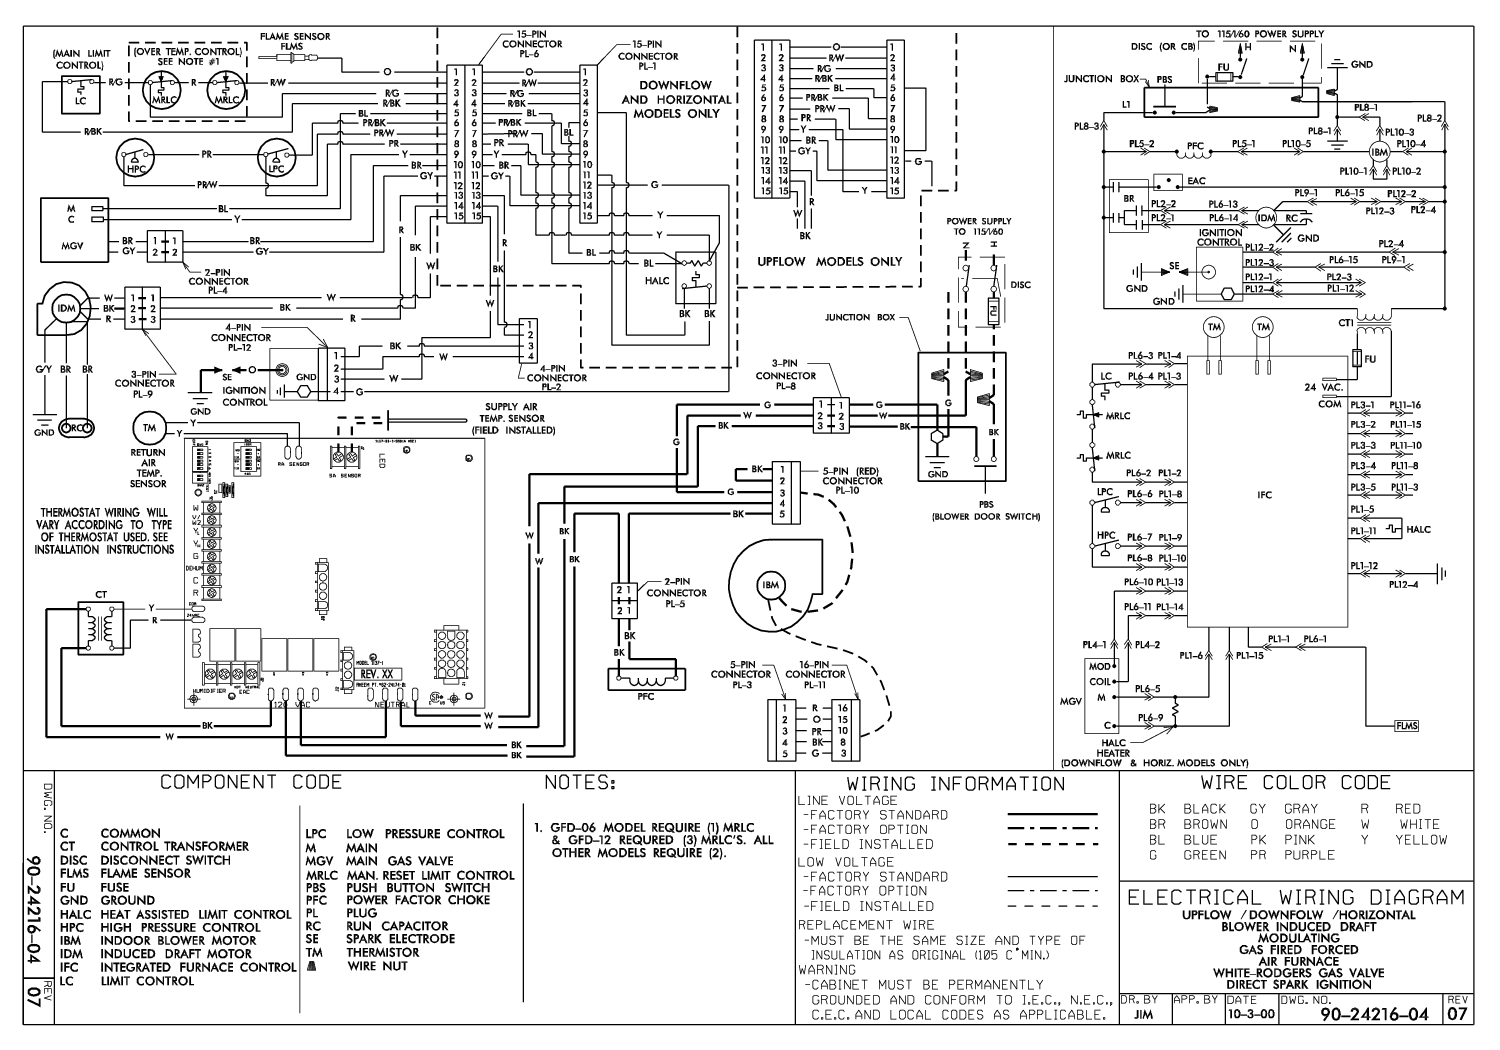 Lennox Electric Furnace Wiring Diagram - 2002 Ford F350 Fuel Filter -  atv.yenpancane.jeanjaures37.fr | Basic Wiring For Gas Furnace |  | Wiring Diagram Resource